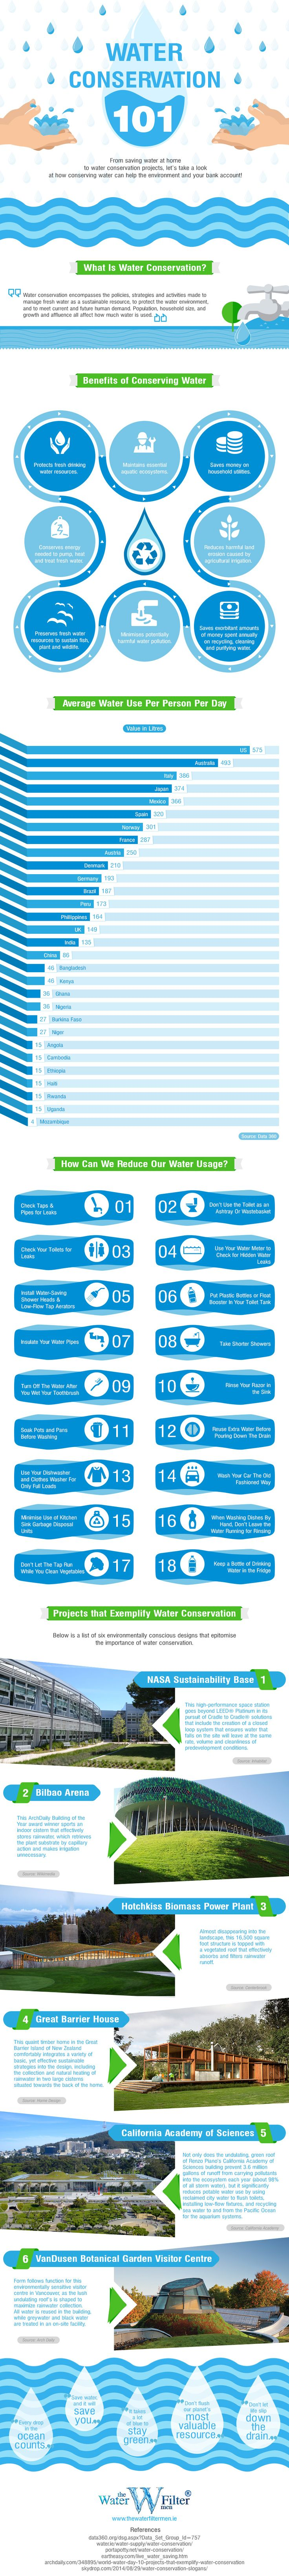 best ideas about water conservation water barrel infographic 6 exemplary water conservation projects